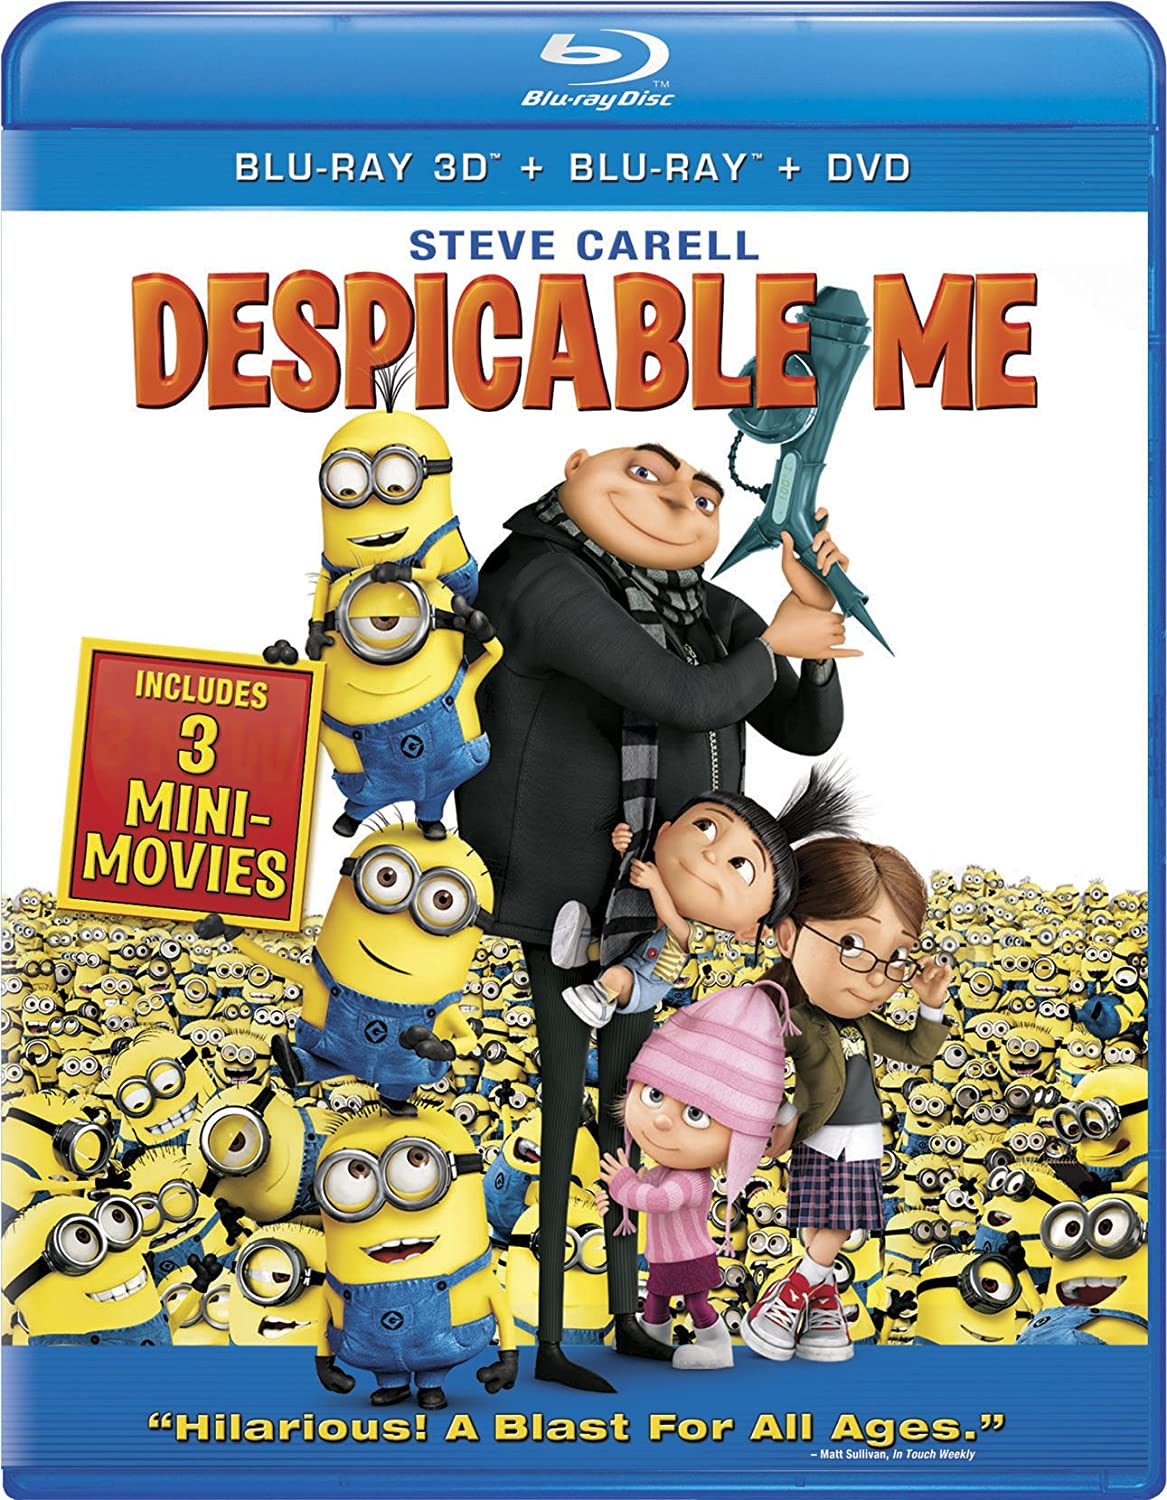 04f3140aa28 Blu-ray Review: Despicable Me - Slant Magazine